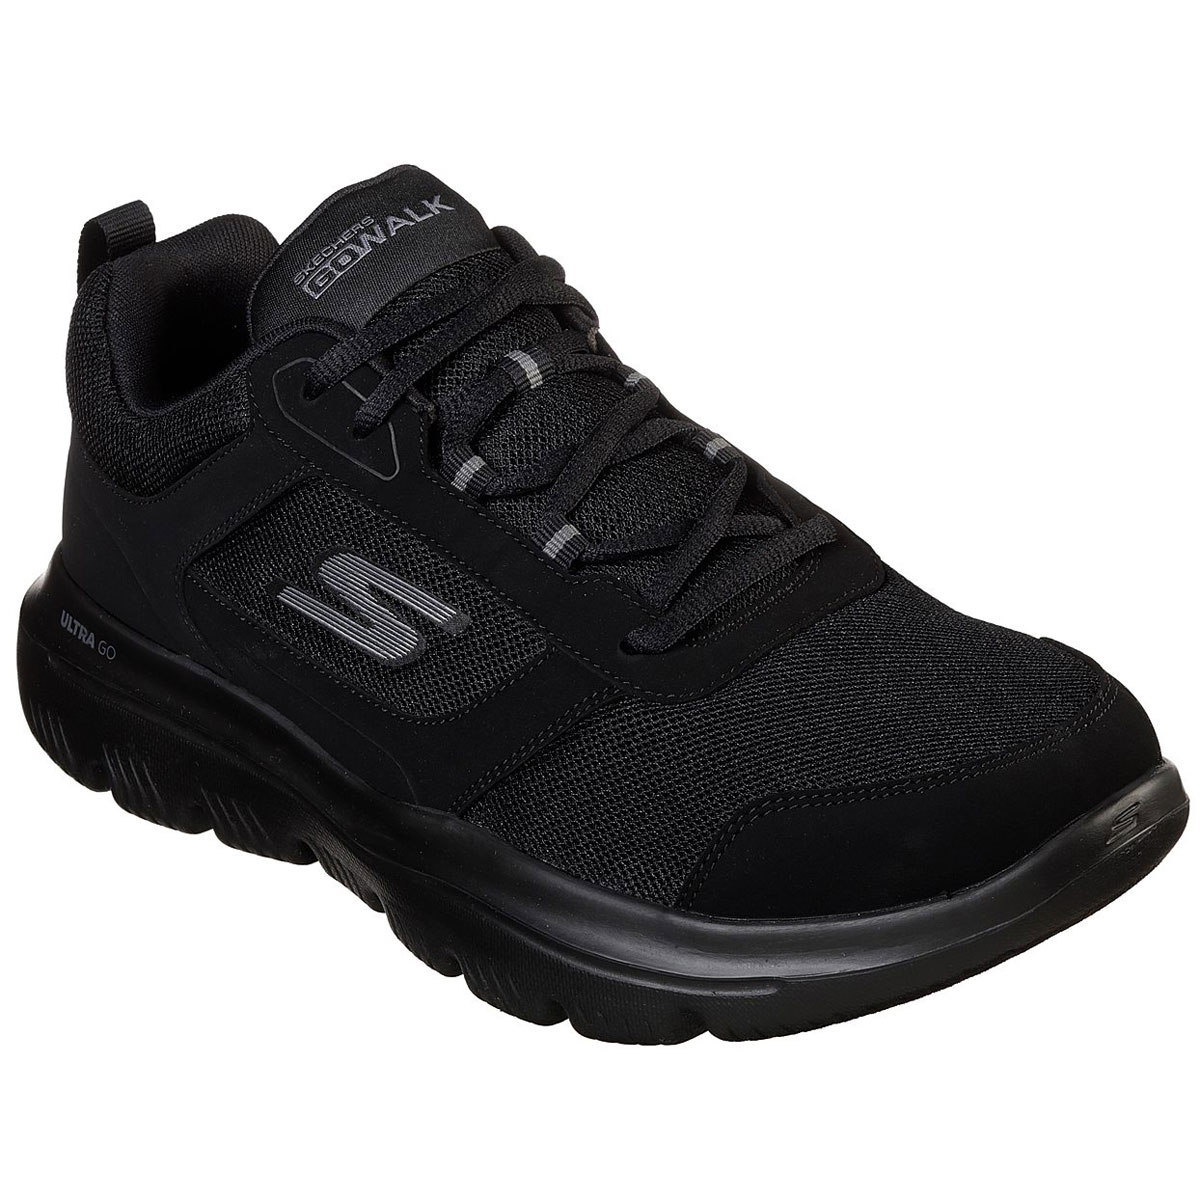 Skechers Men's Gowalk Evolution Ultra Enhance Walking Shoes - Black, 9.5